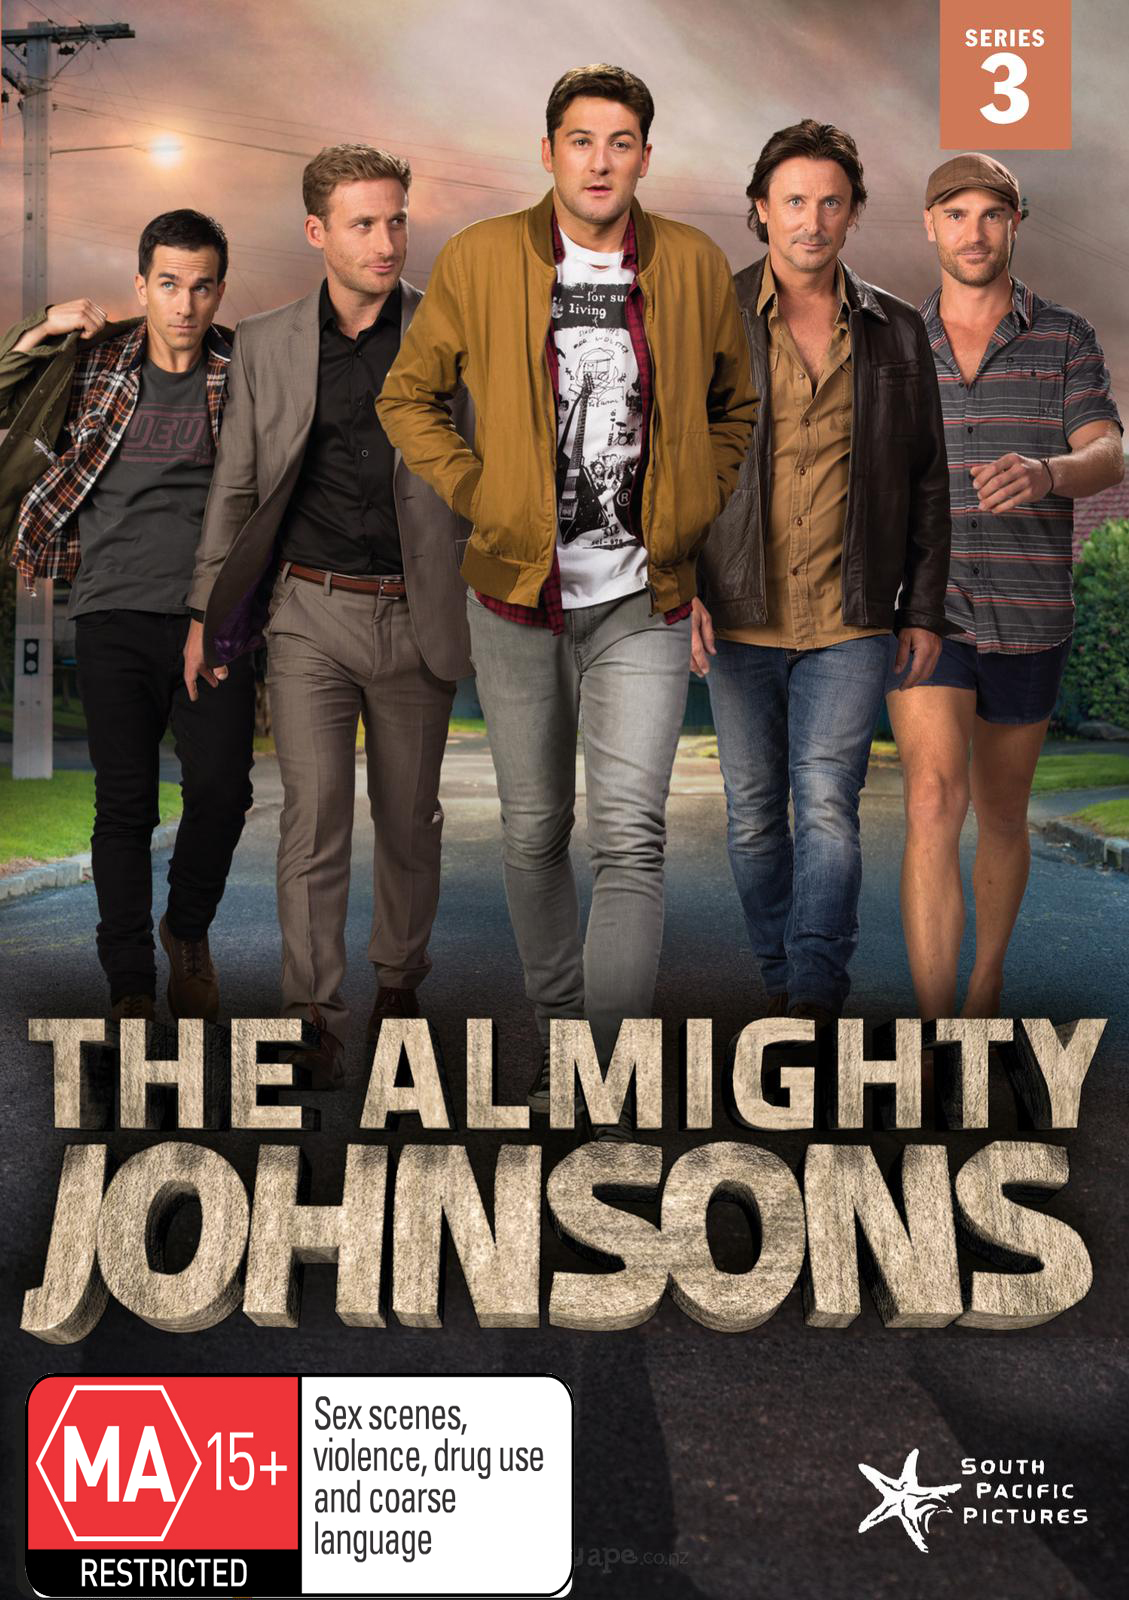 The Almighty Johnsons - The Complete Third Series DVD image